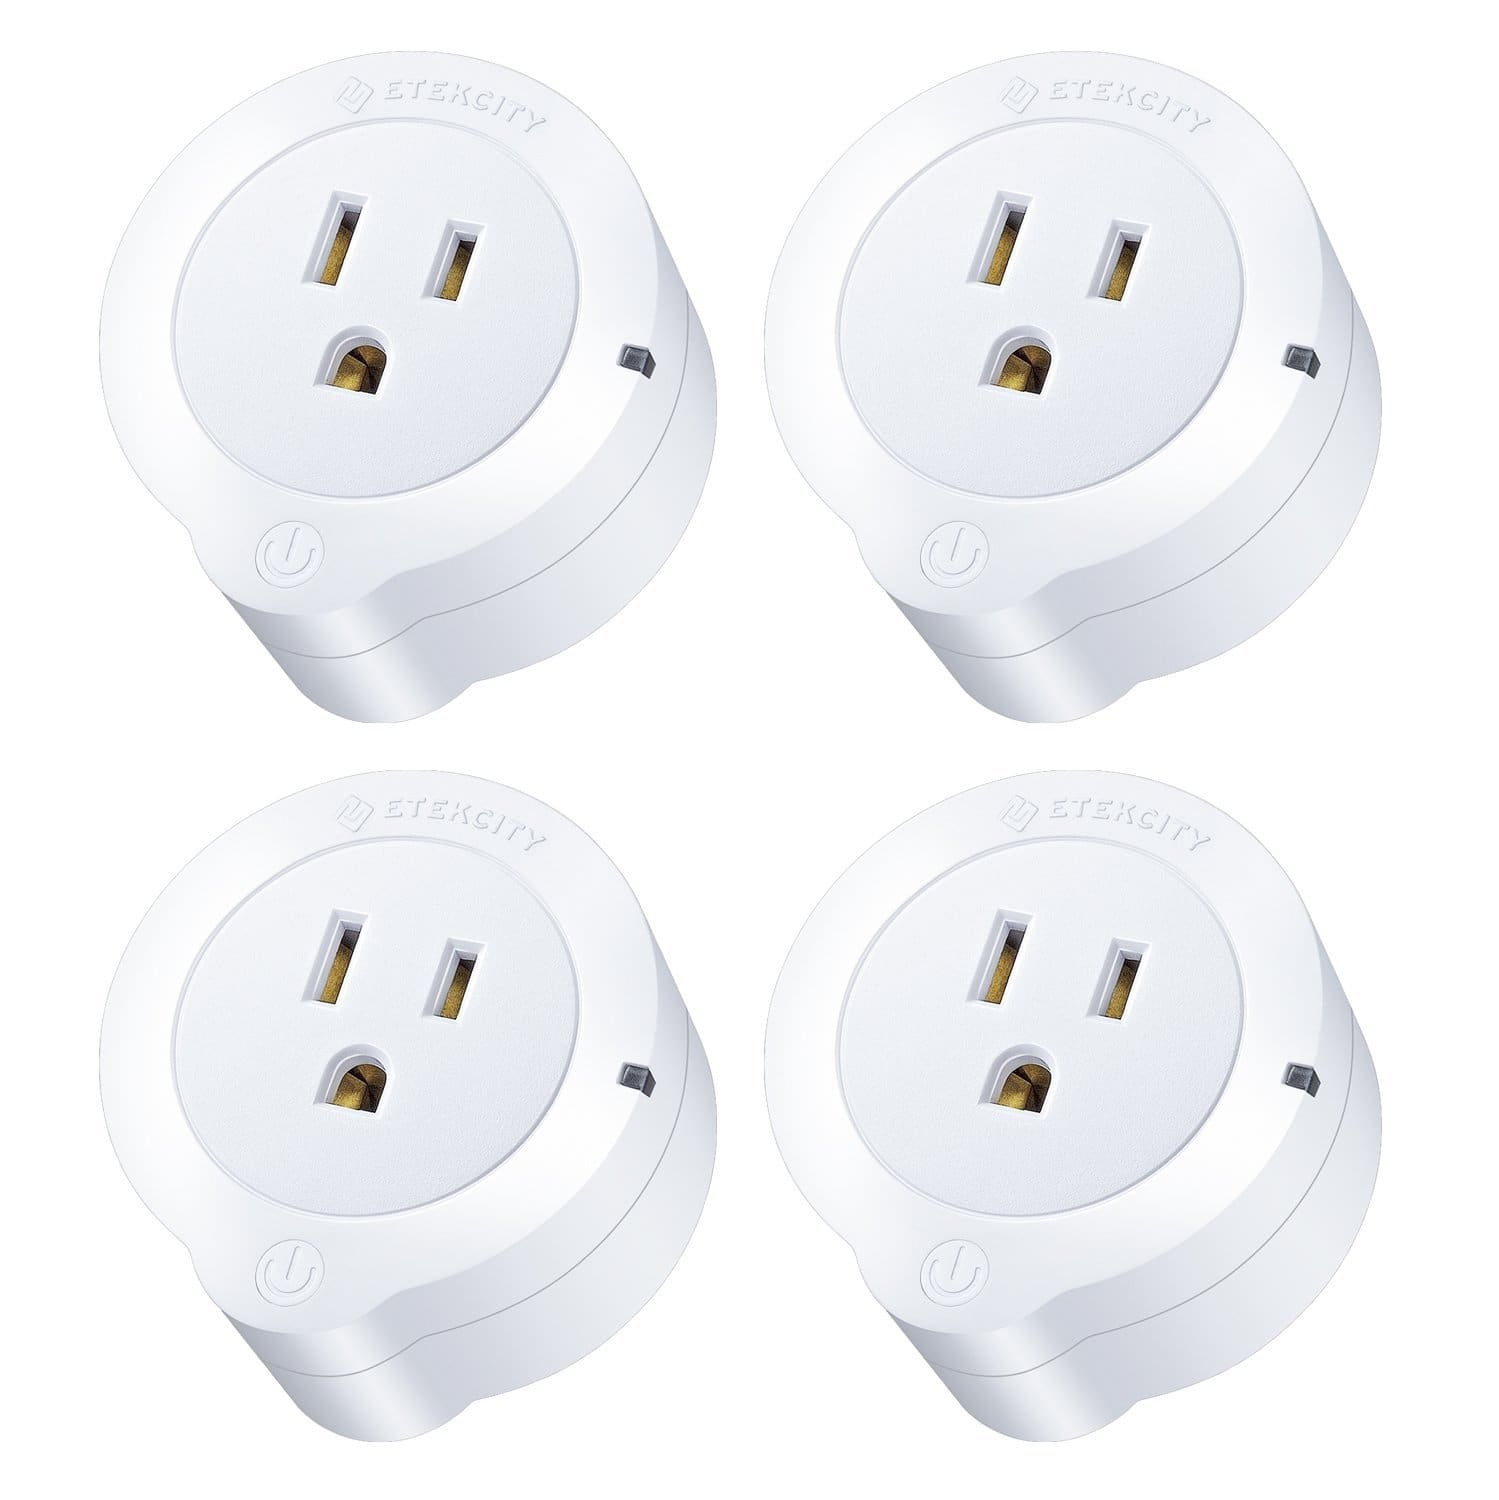 Etekcity 4 Pack WiFi Smart Plug Mini Outlet; Works with Amazon Alexa $42.99